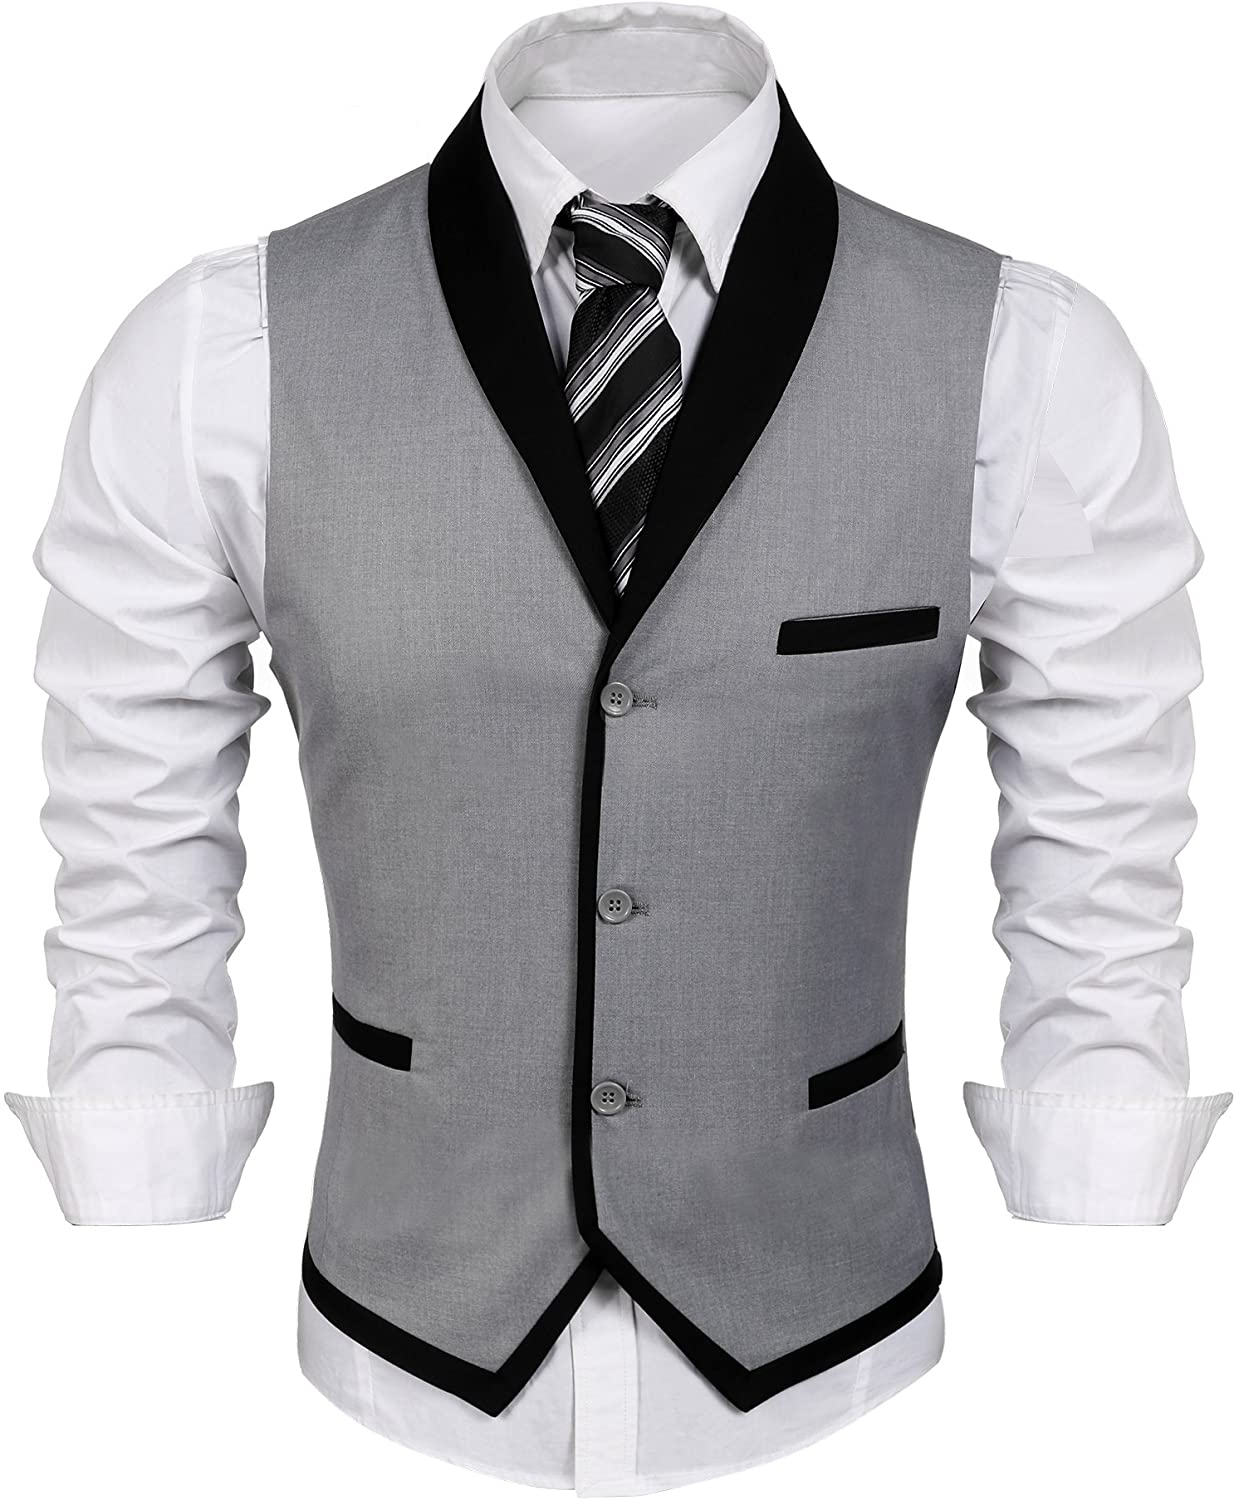 COOFANDY Men's Suit Vest Slim Fit Business Wedding Vests Dress Waistcoat